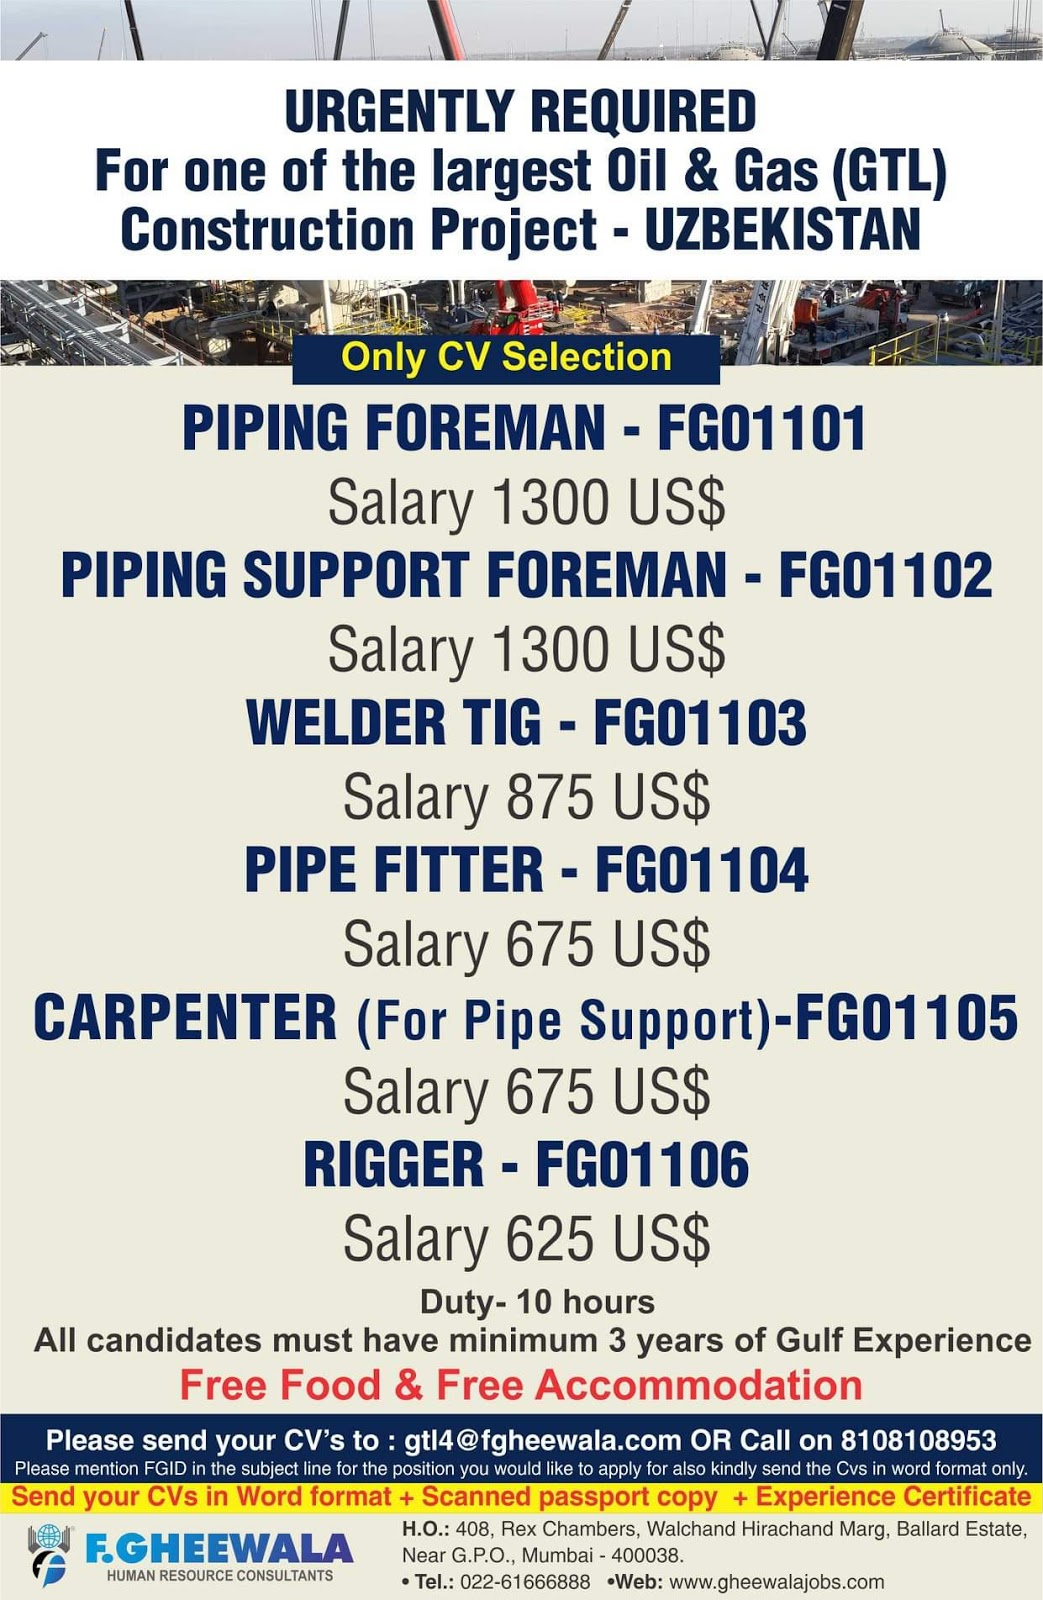 Urgently Required For Uzbekistan-Walkin -Interview For Oil &Gas